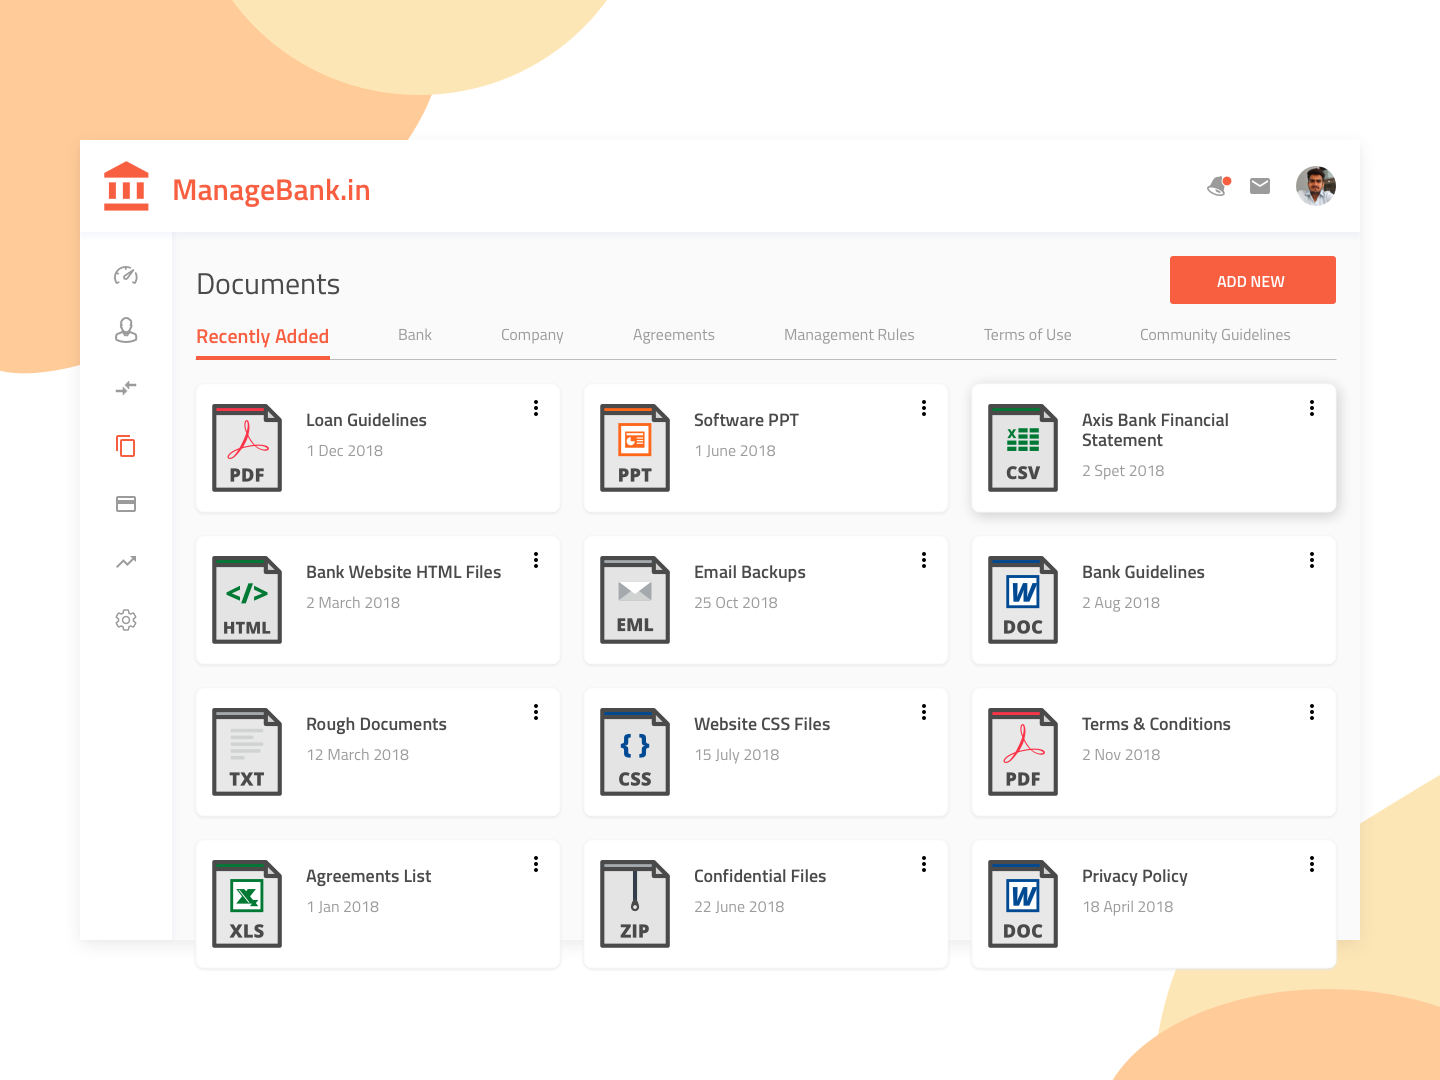 Managebank In Documents Screen by Devang Dave on Dribbble